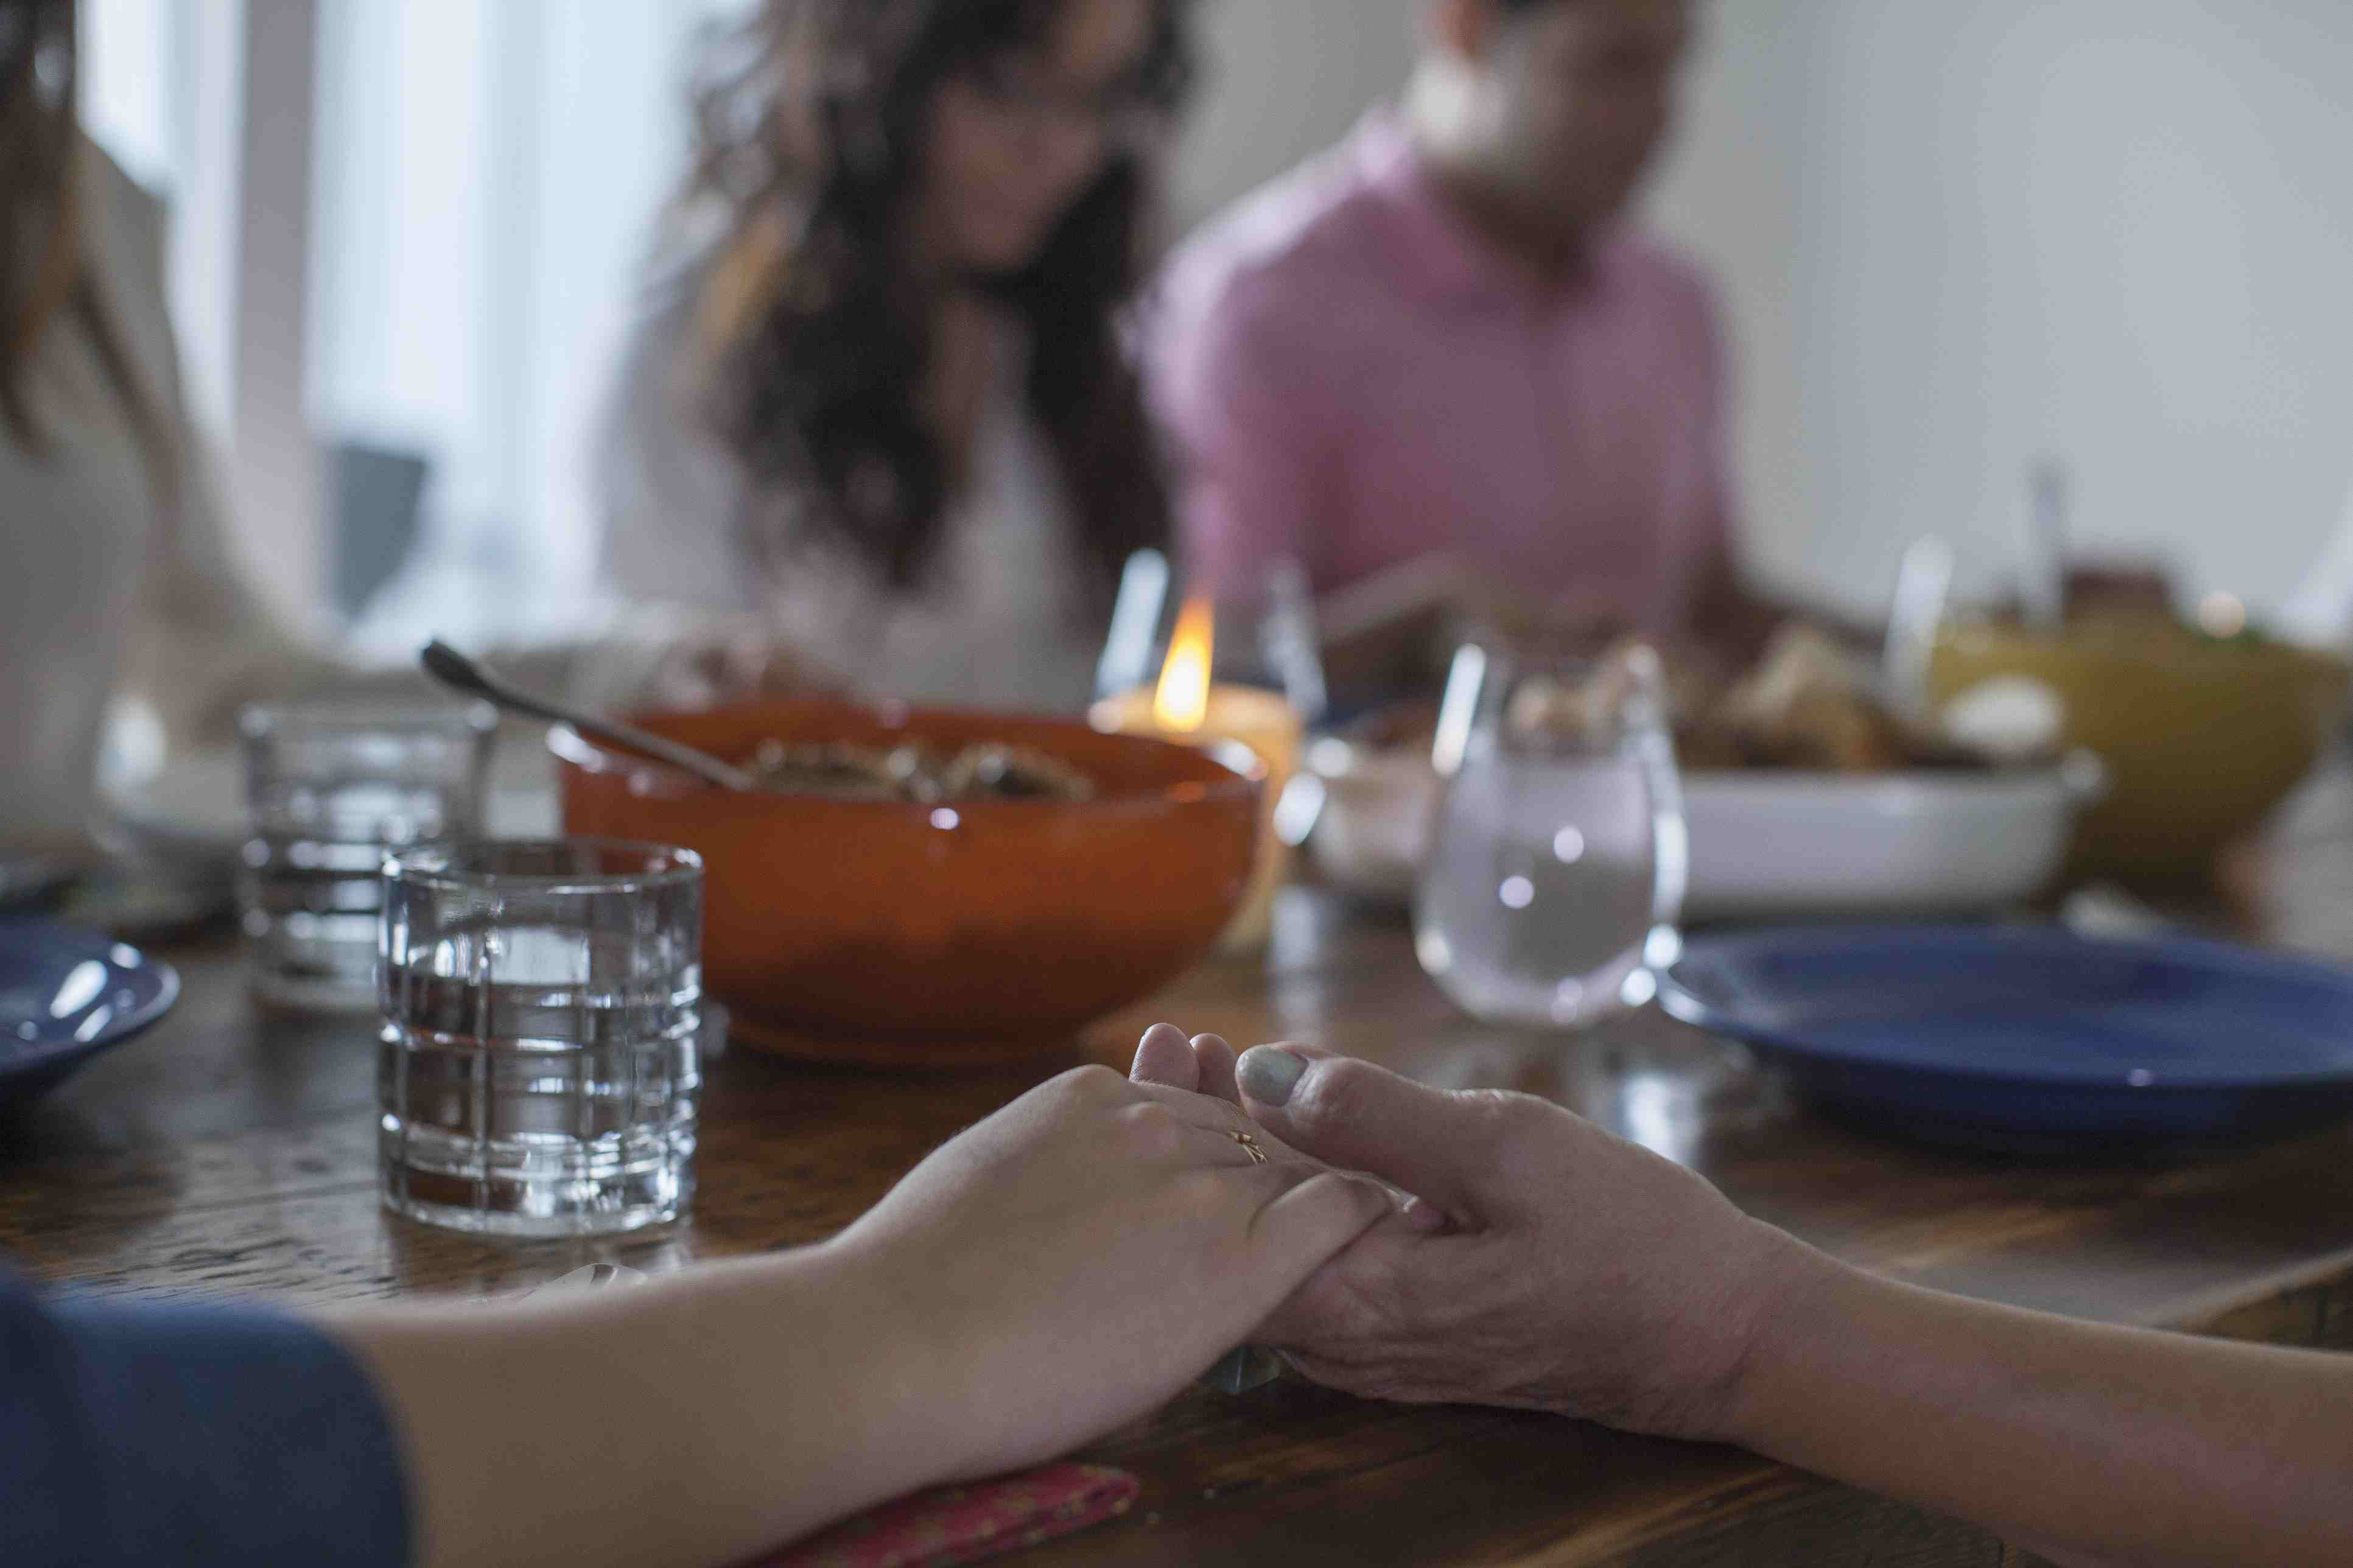 All About Old Woman Praying At Dinner Table Daily Bread Religious